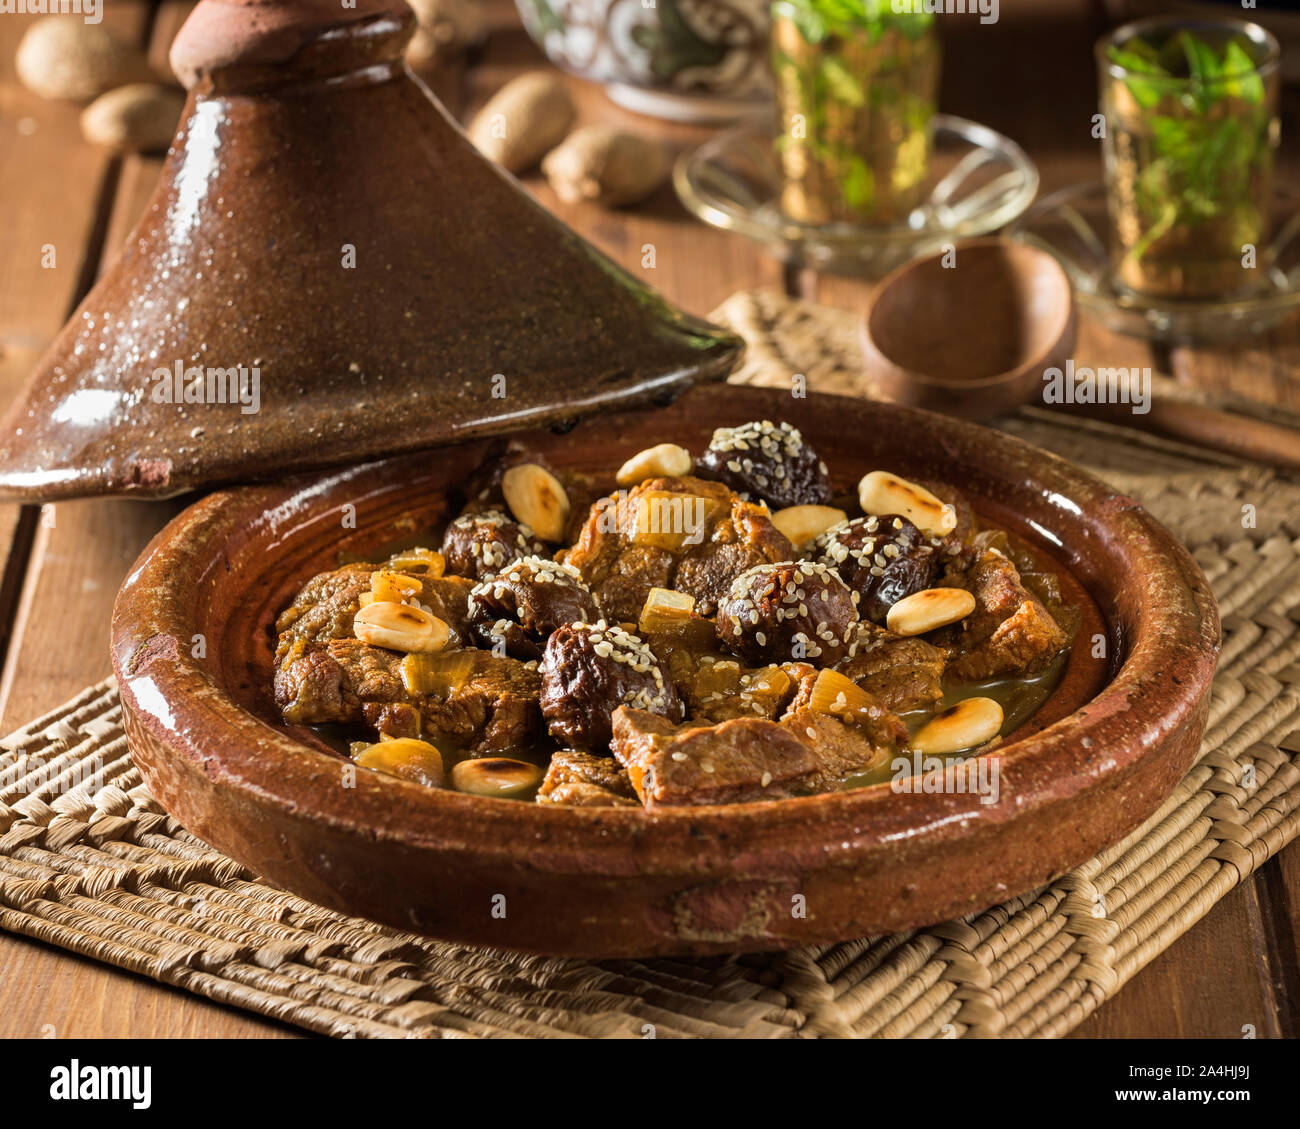 Tagine of lamb with prunes and almonds. Morocco Food Stock Photo